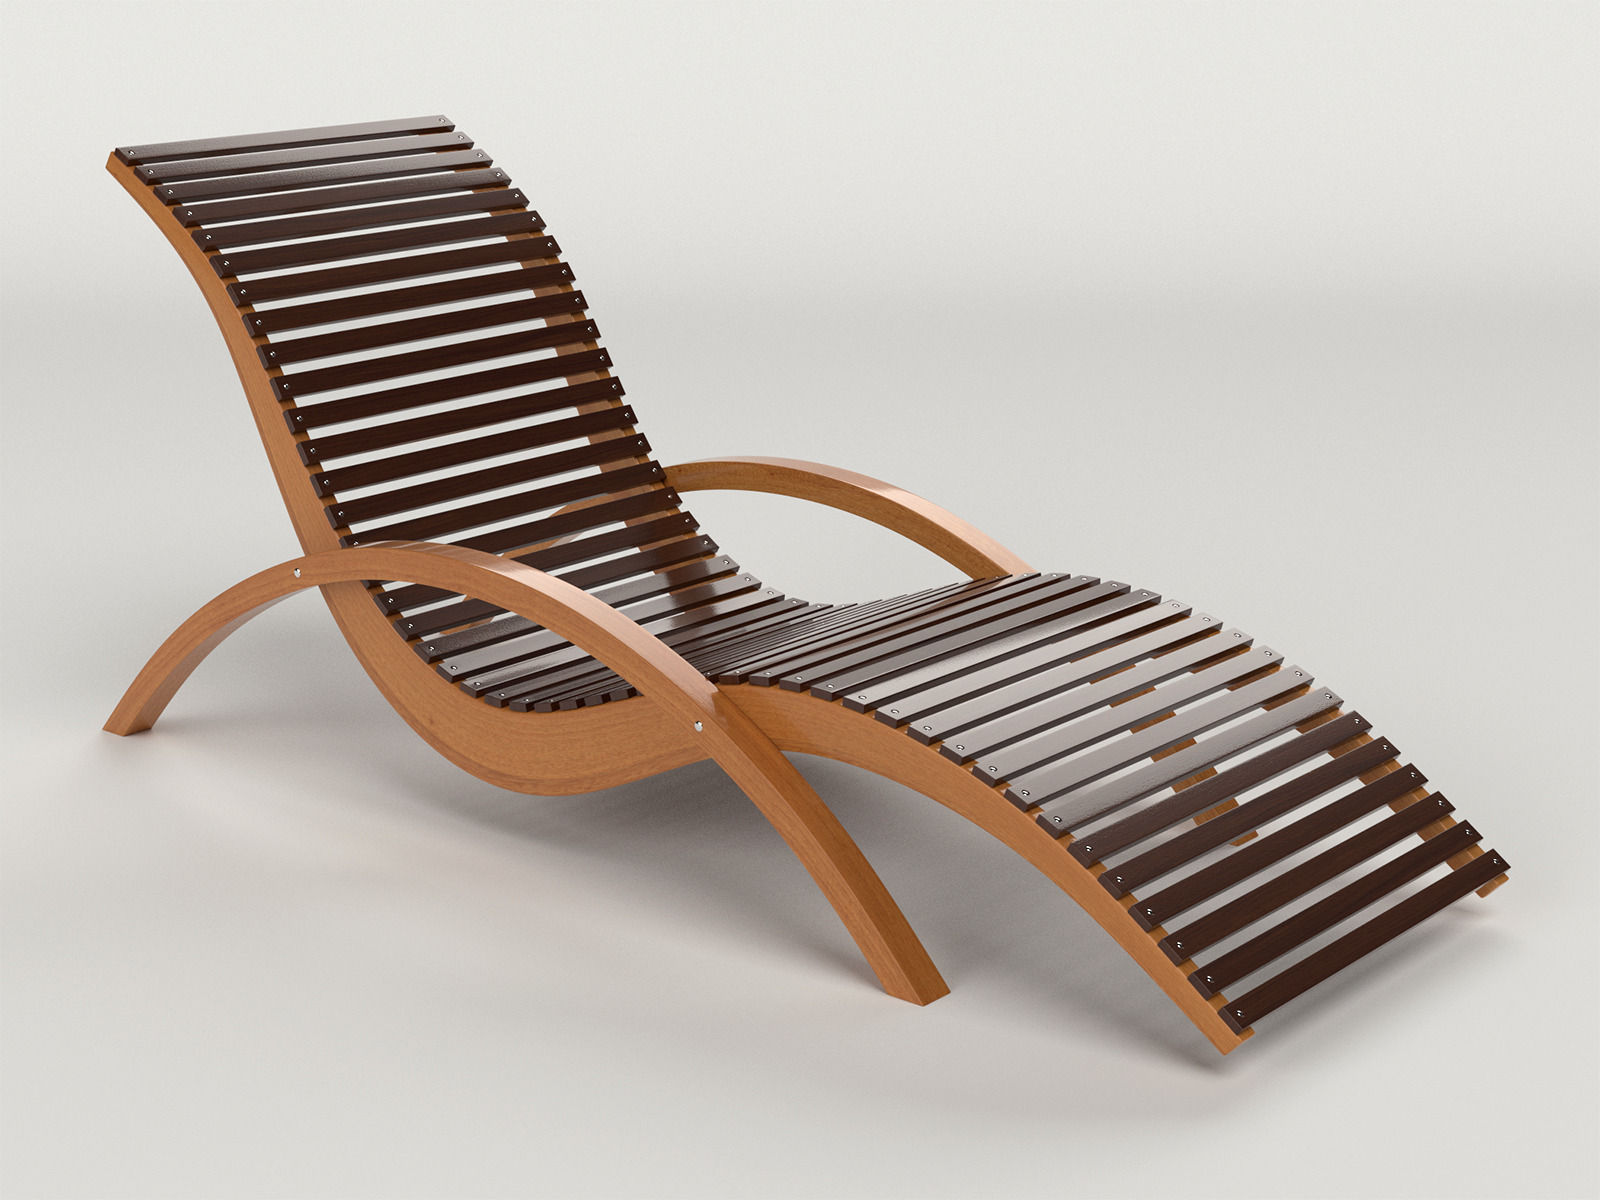 Lounge chair outdoor wood patio deck 3d model obj mtl cgtrader com - Lounge Chair Outdoor Wood Patio Deck 3d Model Obj Dxf Mtl 1